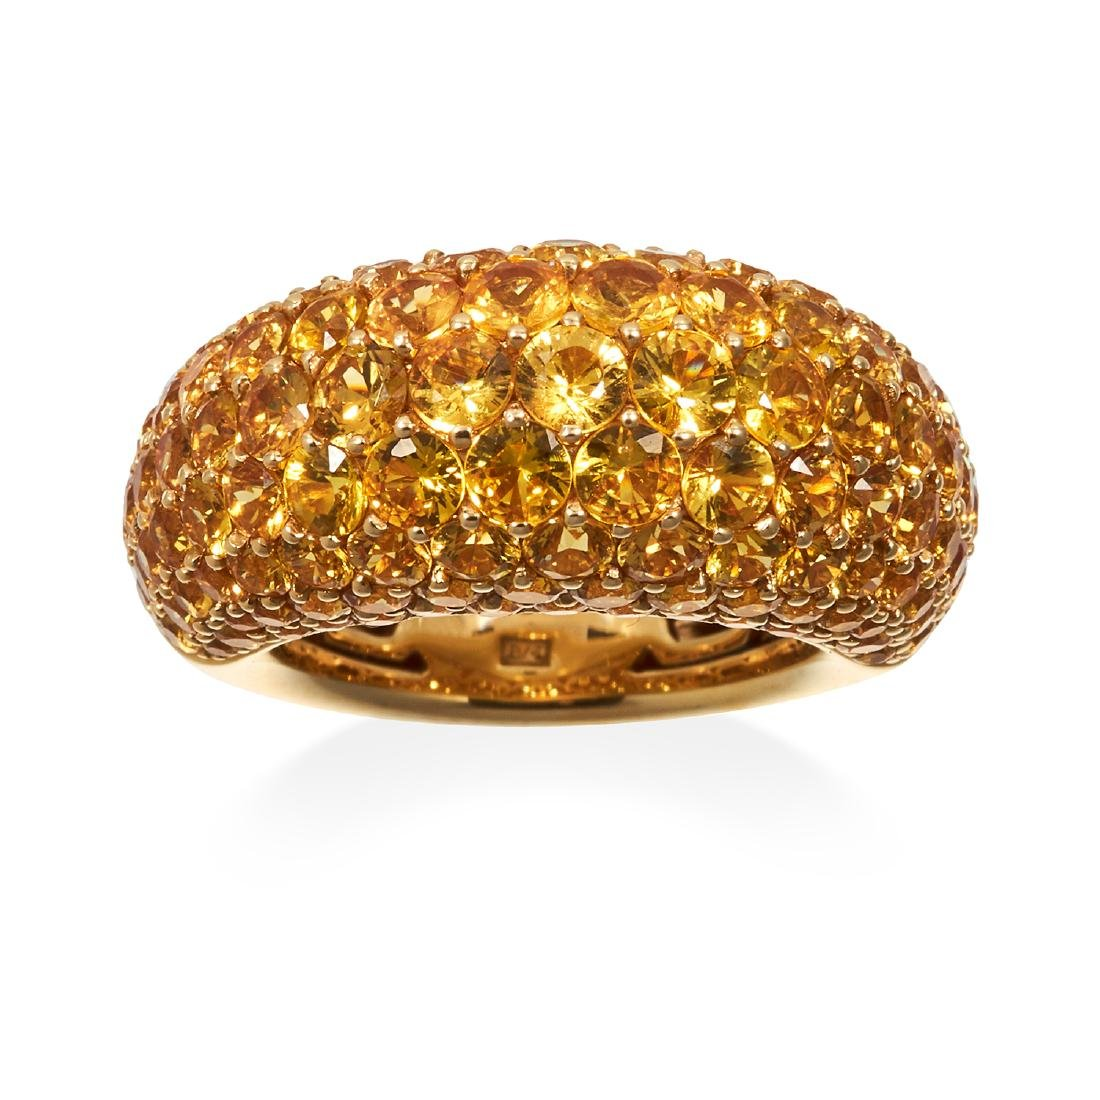 A YELLOW SAPPHIRE DRESS RING in 18ct yellow gold, bombe